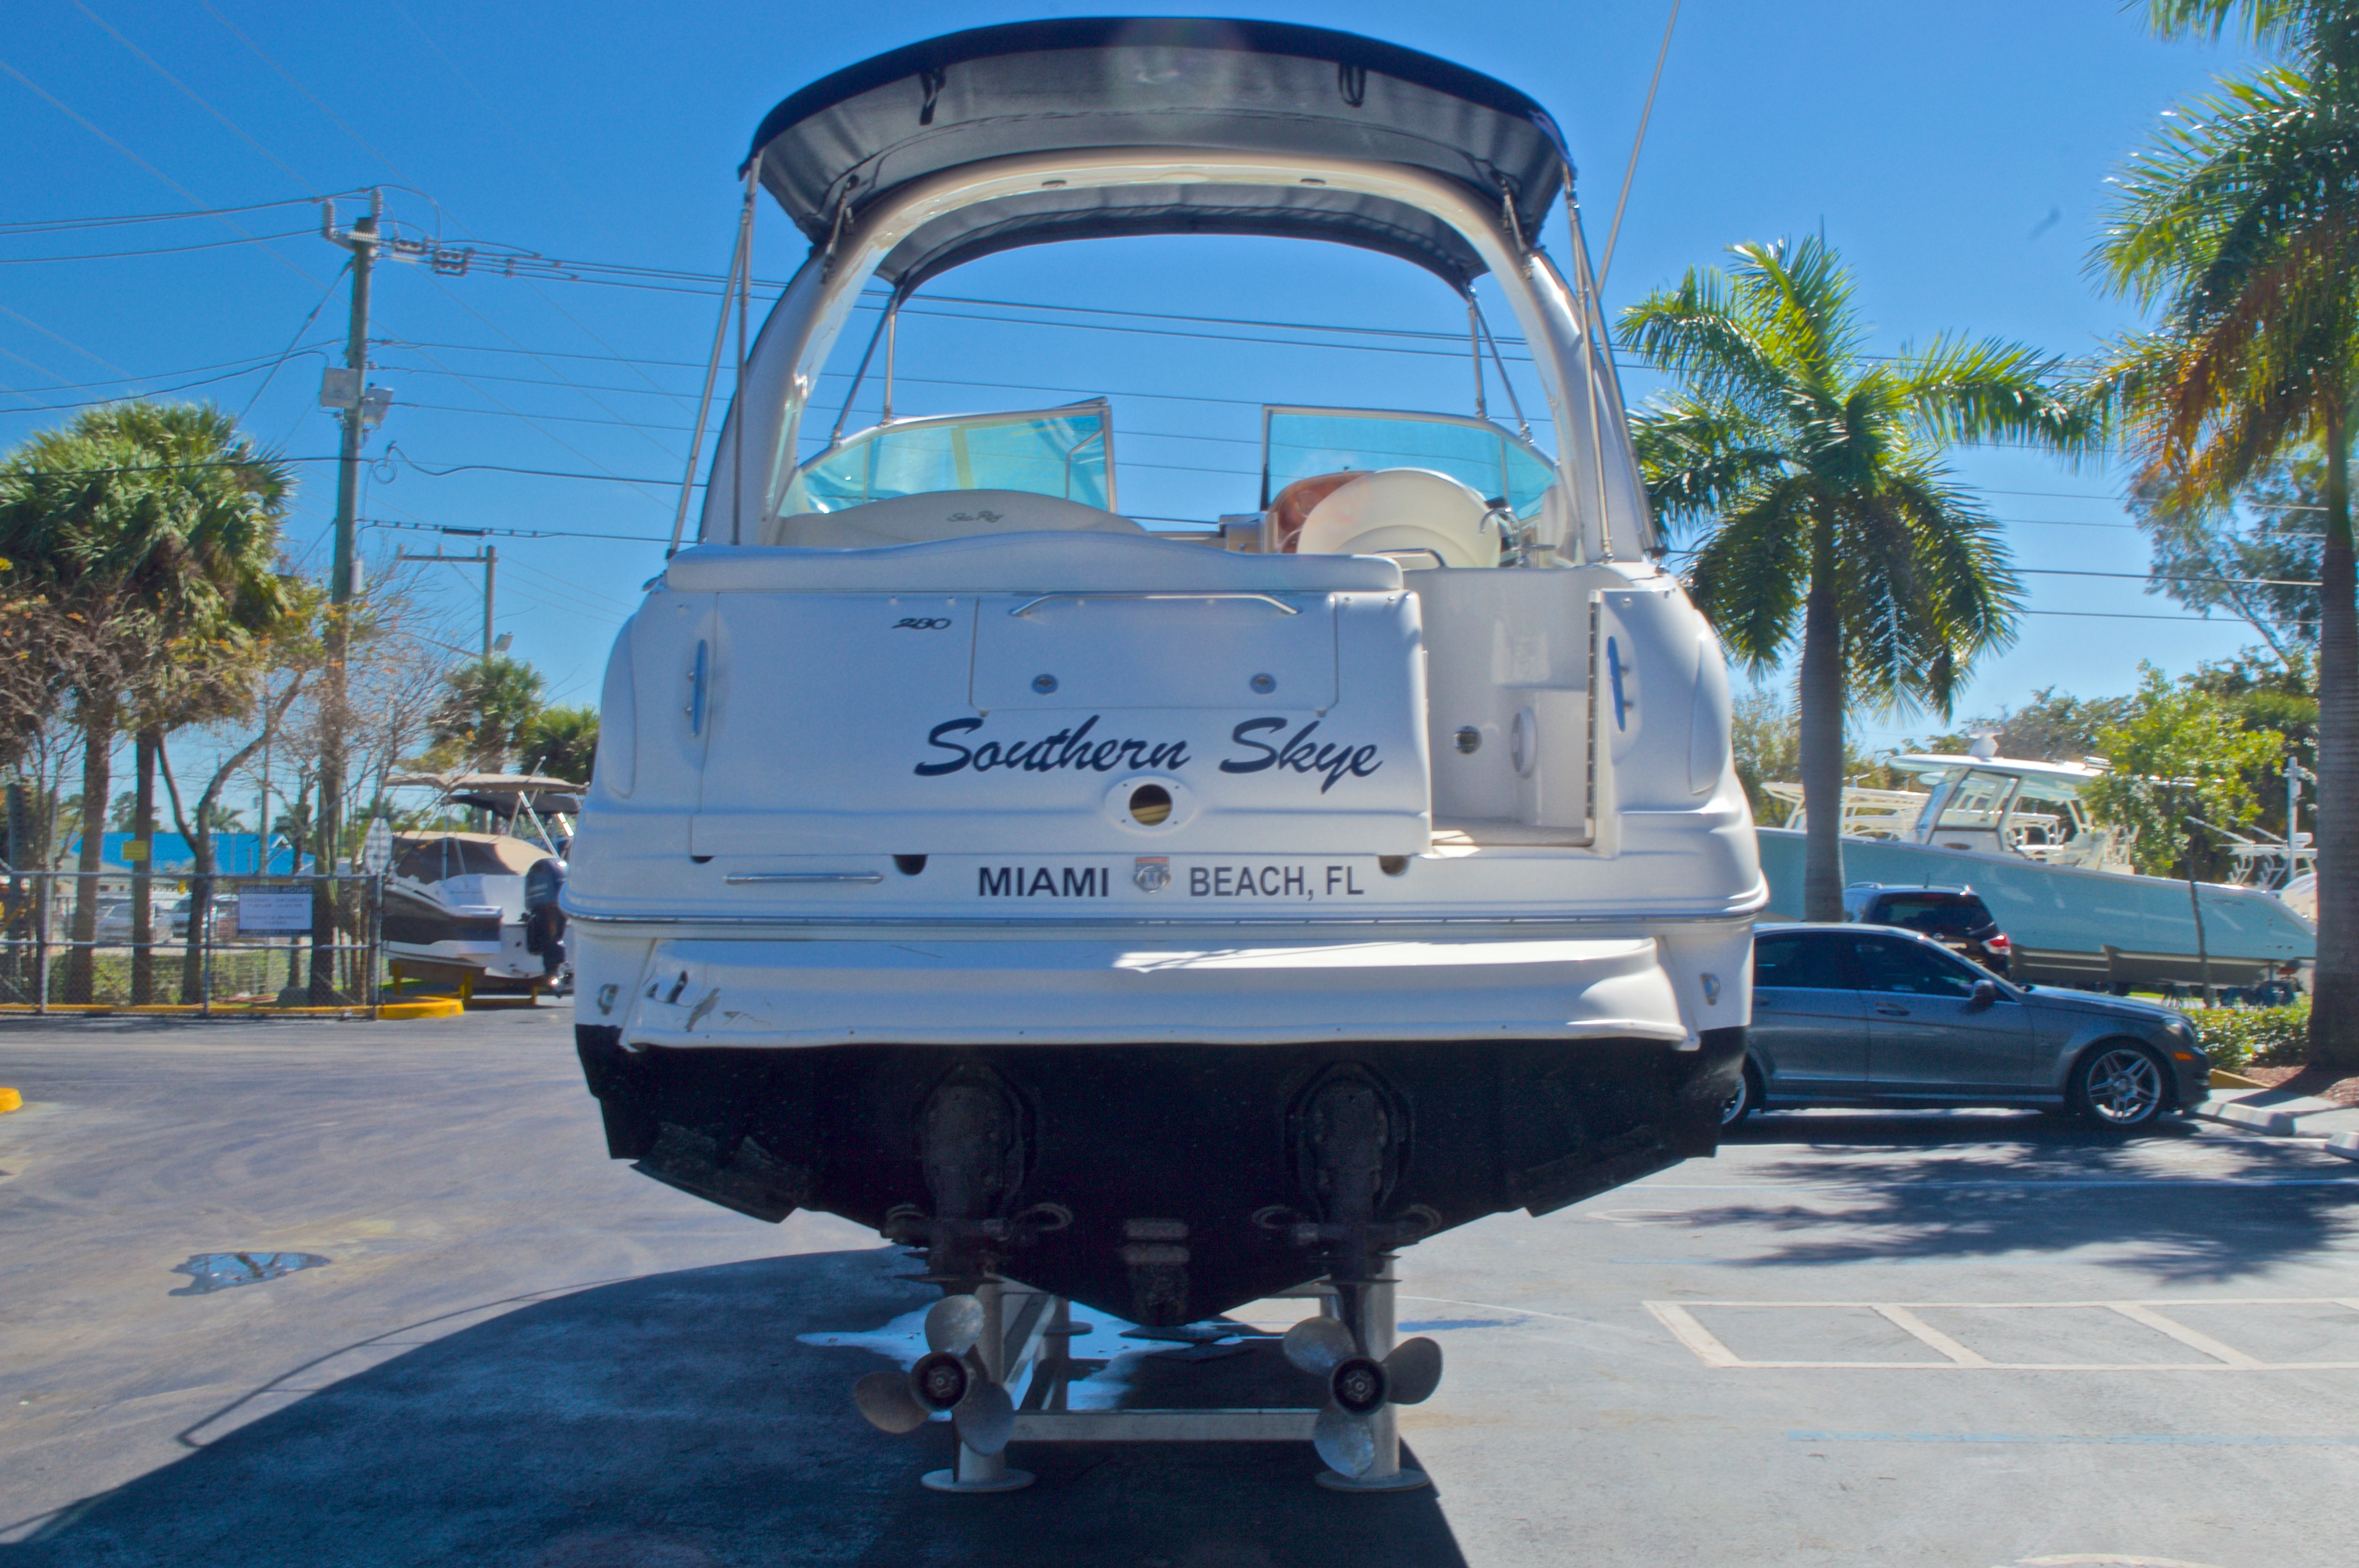 Thumbnail 9 for Used 2005 Sea Ray 280 Sundancer boat for sale in West Palm Beach, FL